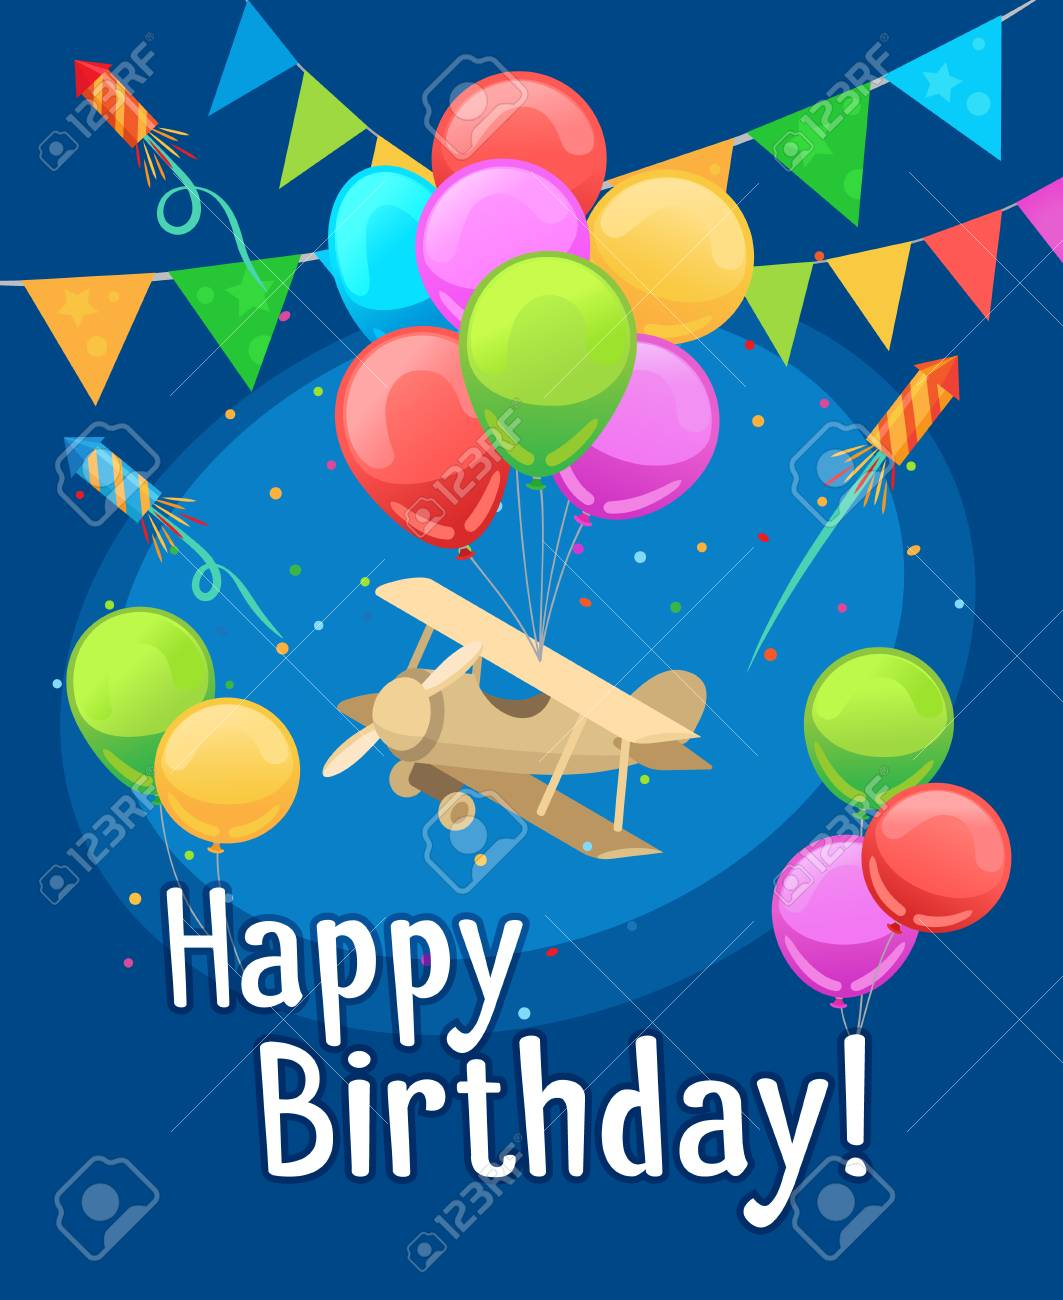 Kids Party Card Template Children Happy Birthday With Balloons And Airplane Vector Illustration